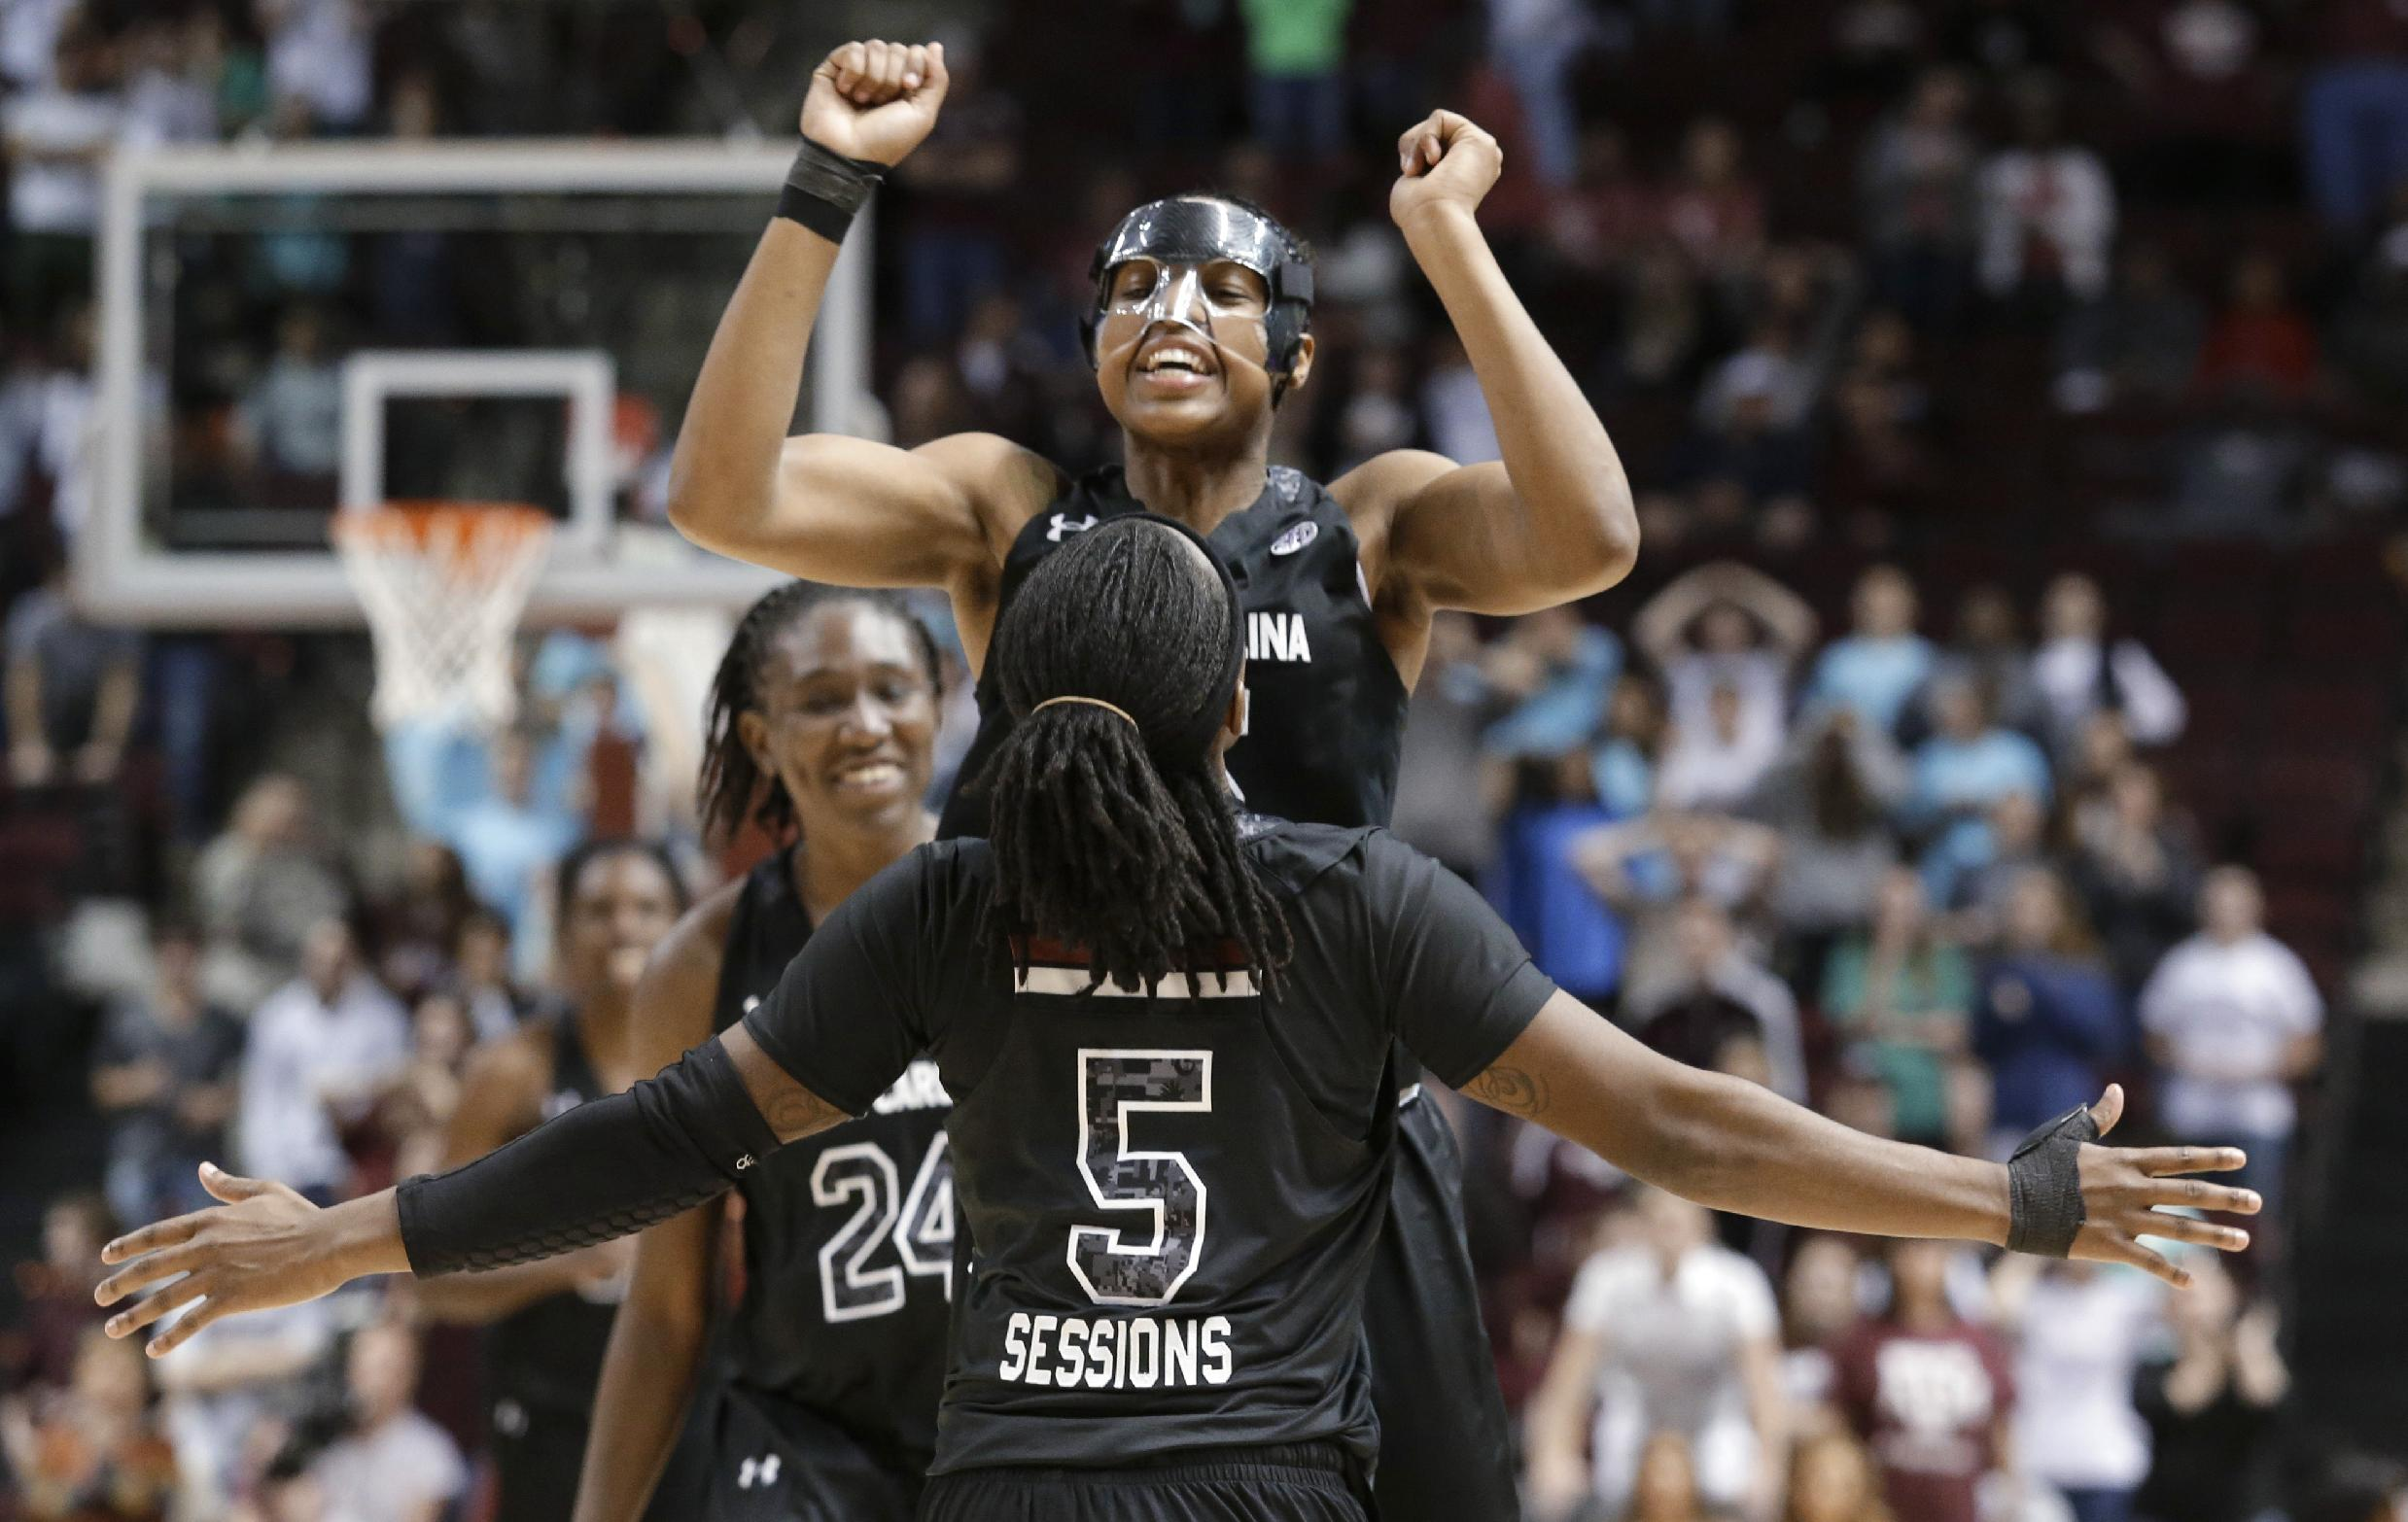 Texas A&M women edge South Carolina 67-65 in OT